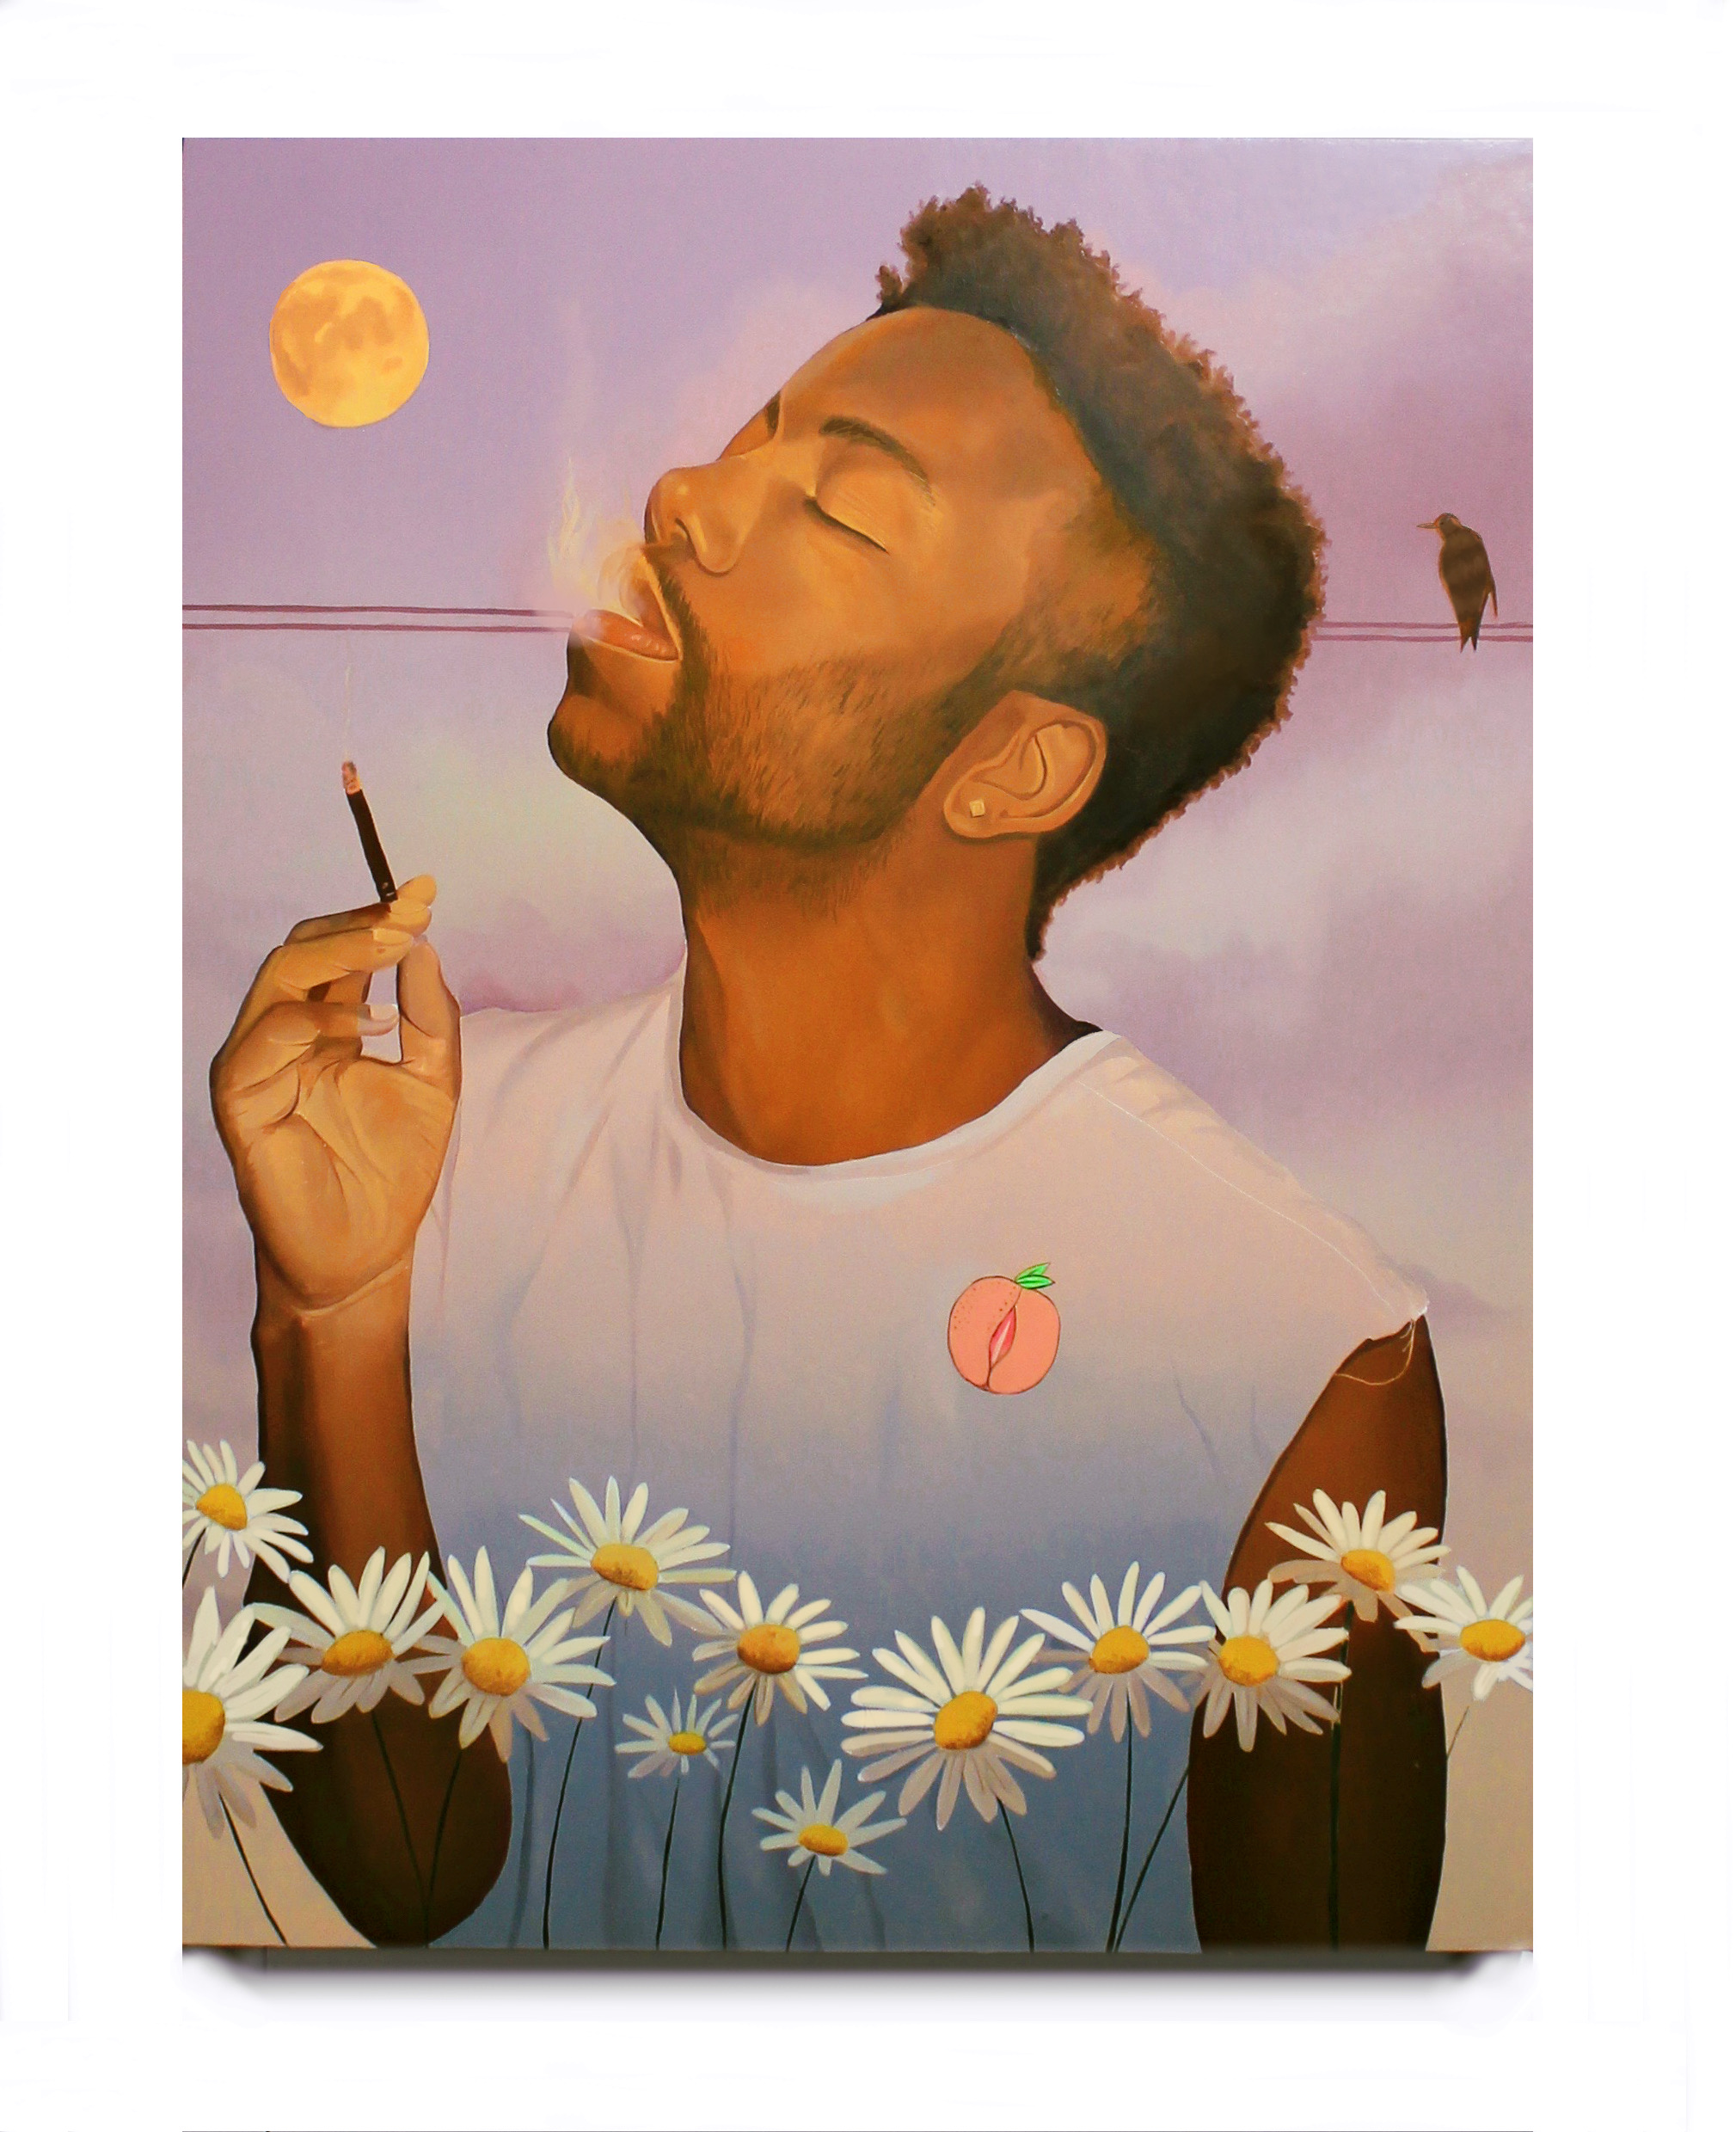 Prayin' on the Moonlight 30 x 40 inches oil on canvas on panel 2017